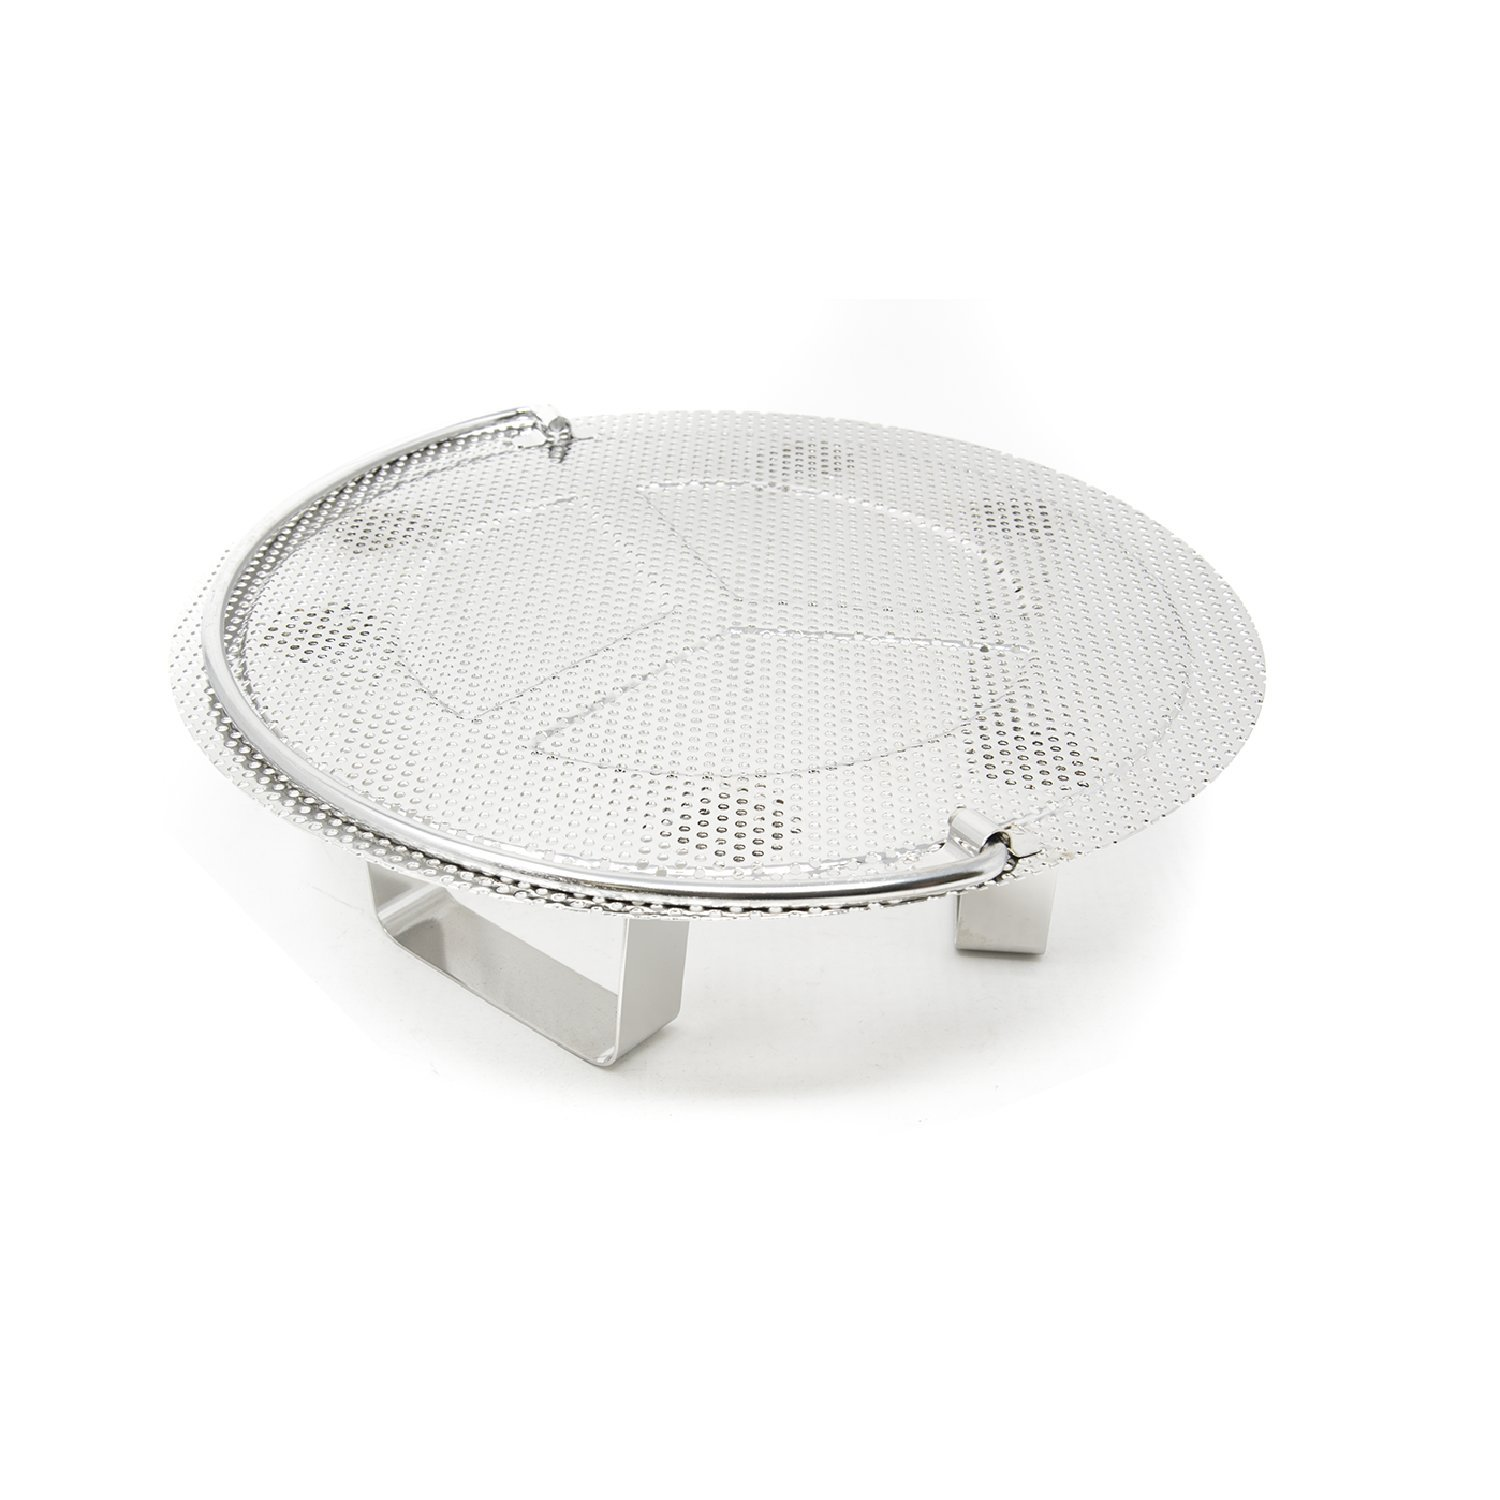 GasOne 30540 S Gas One Beer Filter Pot Stainless Steel False Bottom for Home Brewing Supplies (40 QT), 40QT, by GasOne